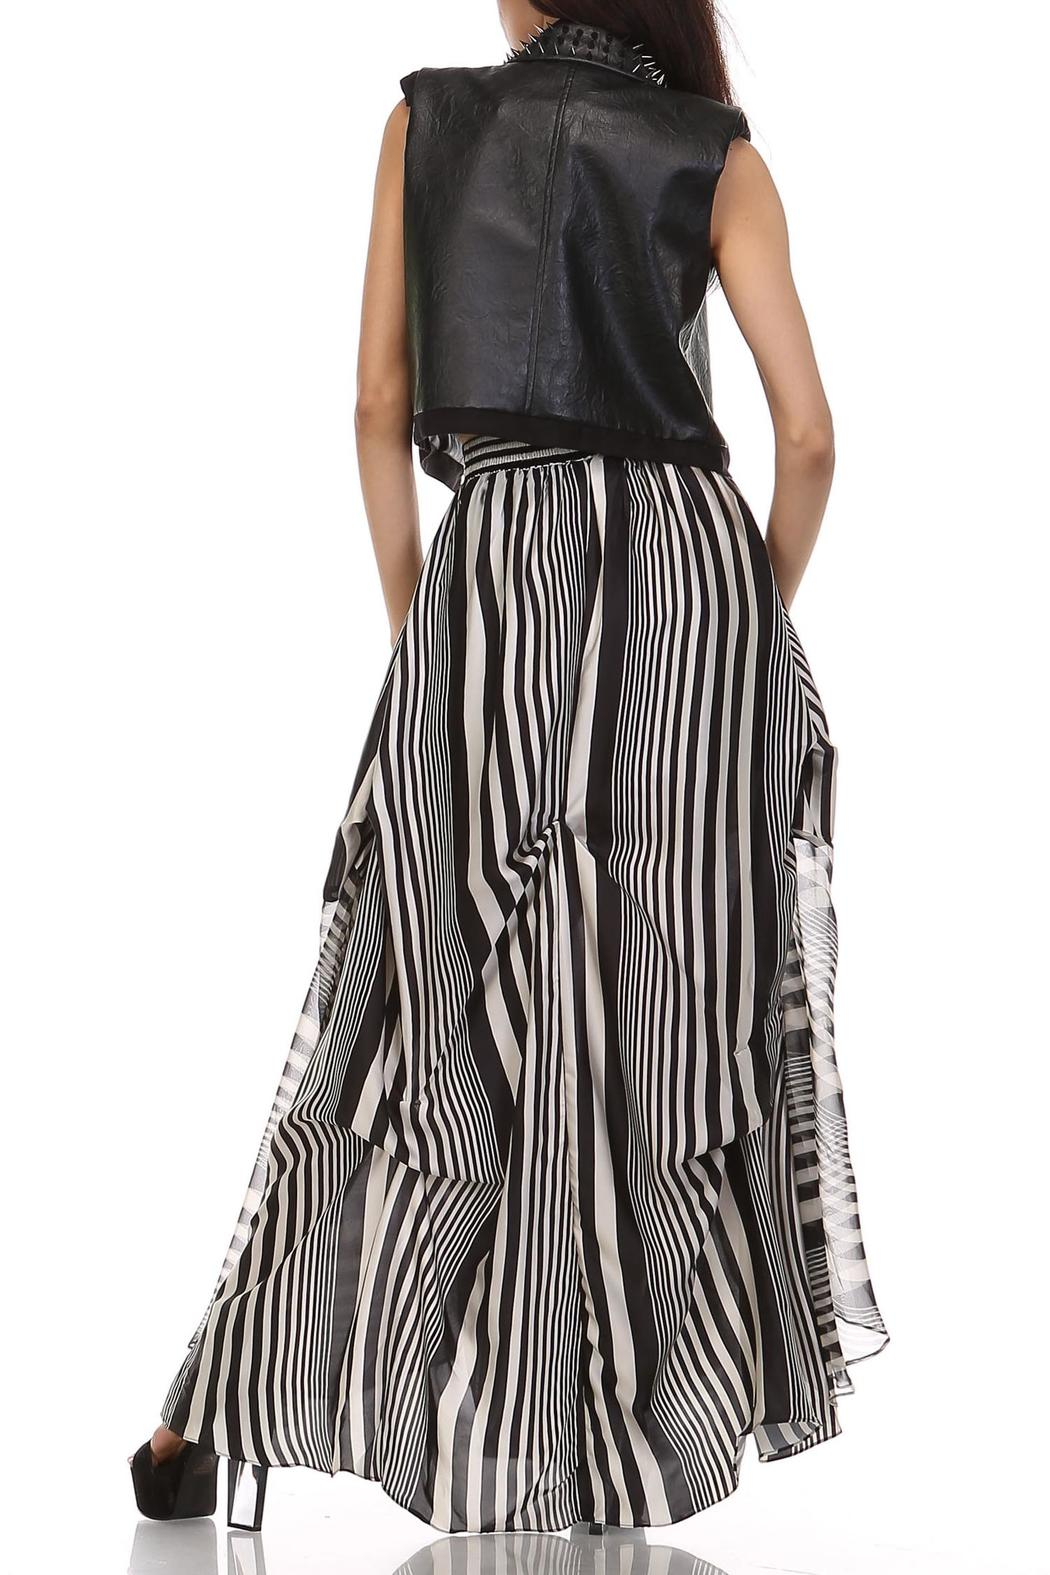 MHGS Licorice Stripe Maxi - Back Cropped Image